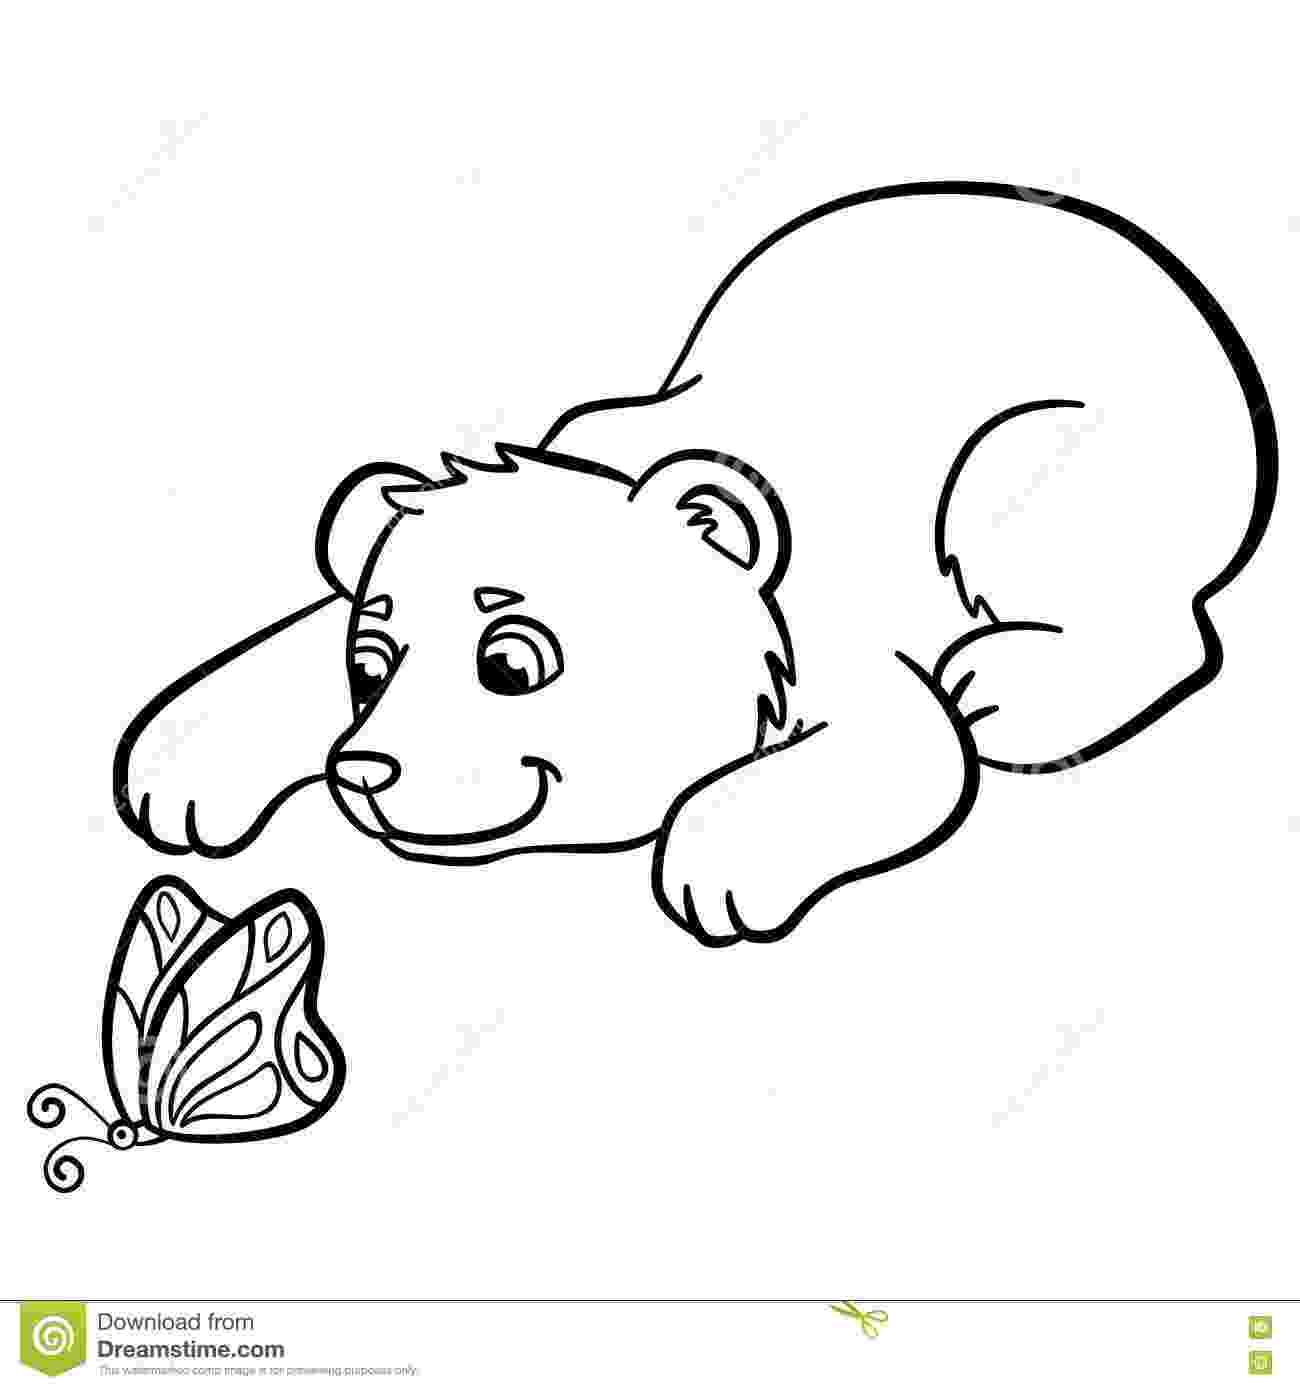 cute wild animals colouring pages coloring pages wild animals two little cute chameleon animals wild pages colouring cute